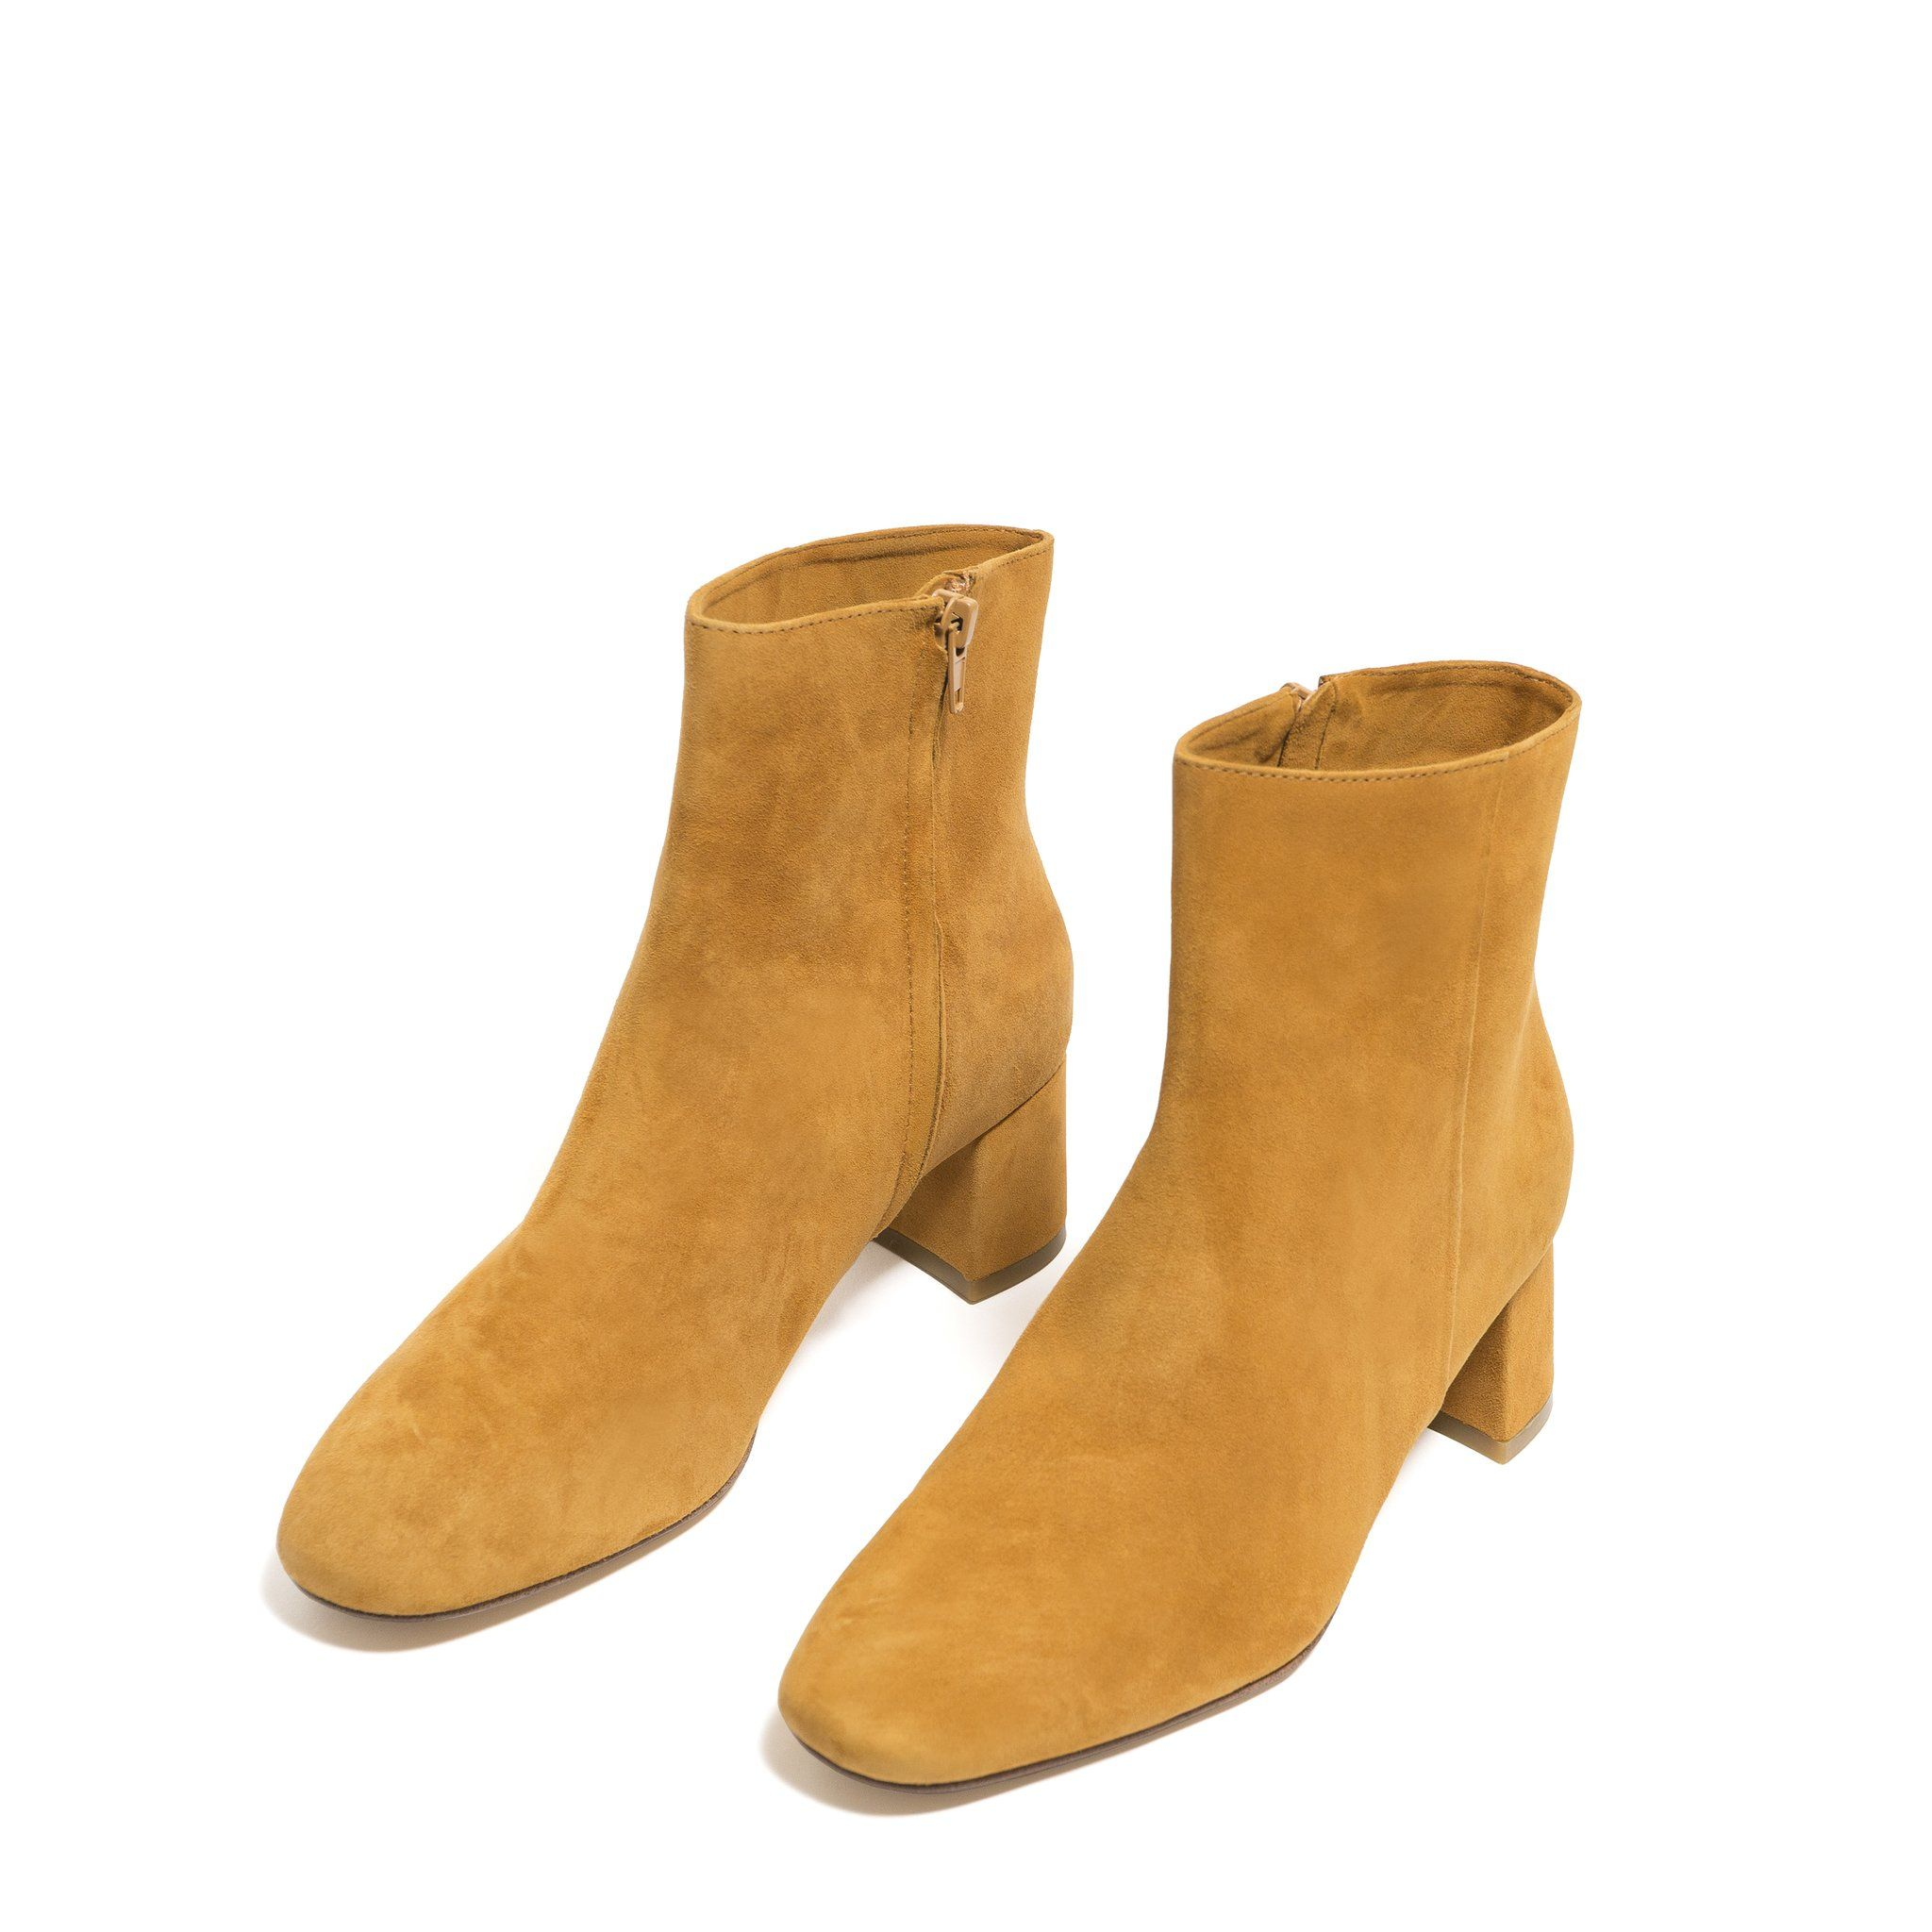 ANKLE BOOT, MUSTARD | Boots, Ankle boot